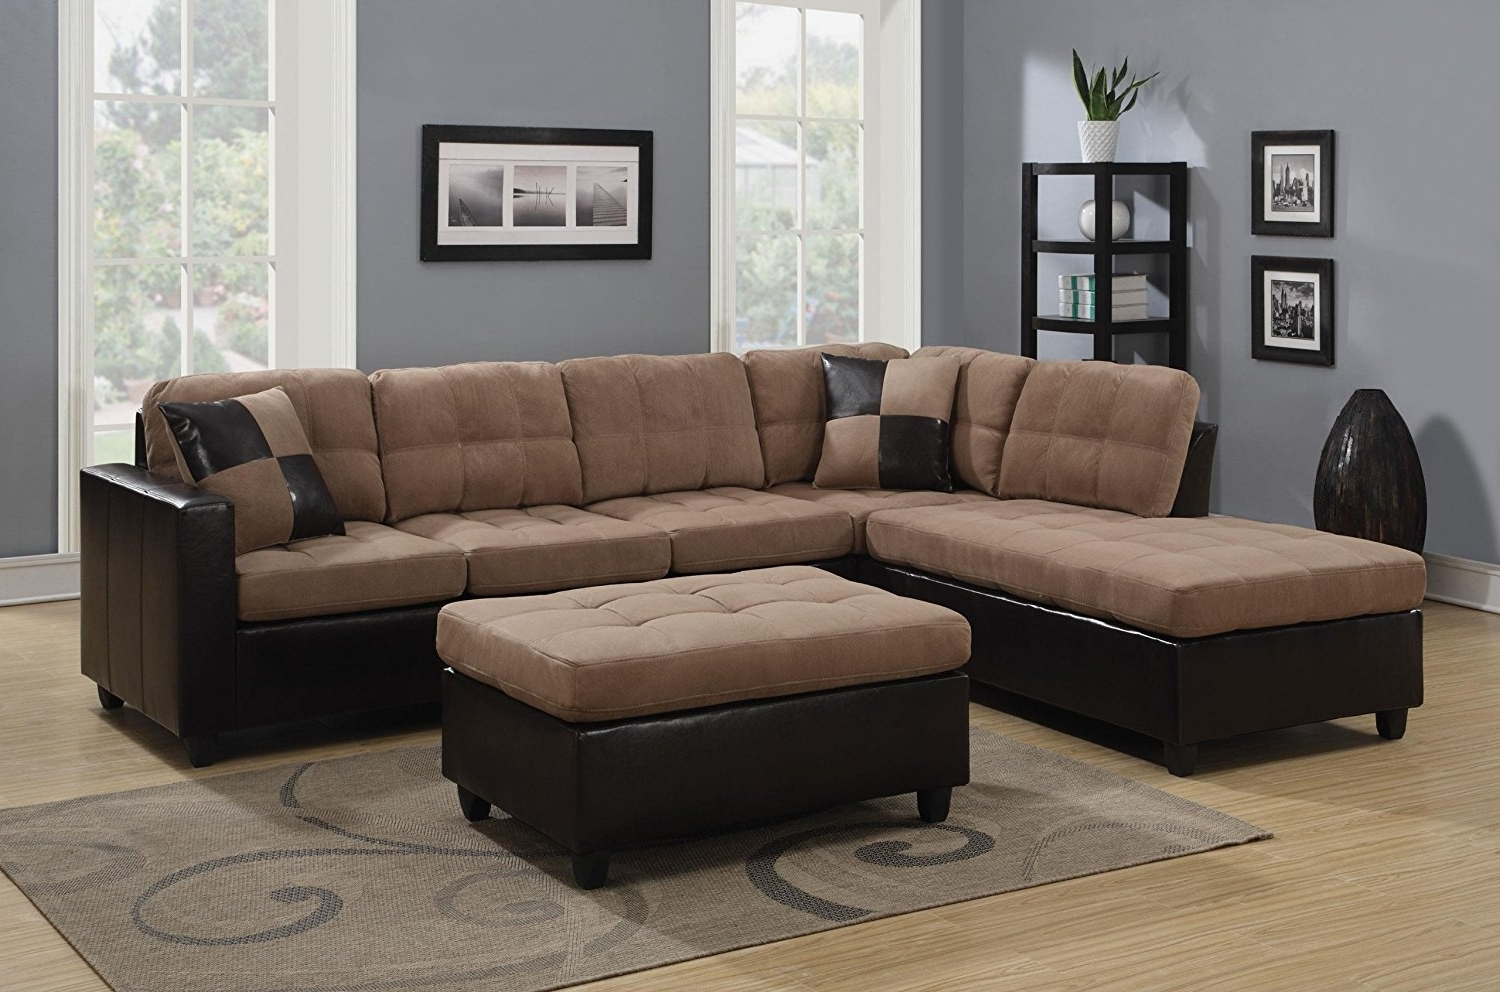 Popular Living Room: Shop Sectional Sofas Leather Sectionals Living Spaces Inside Living Spaces Sectional Sofas (View 9 of 20)